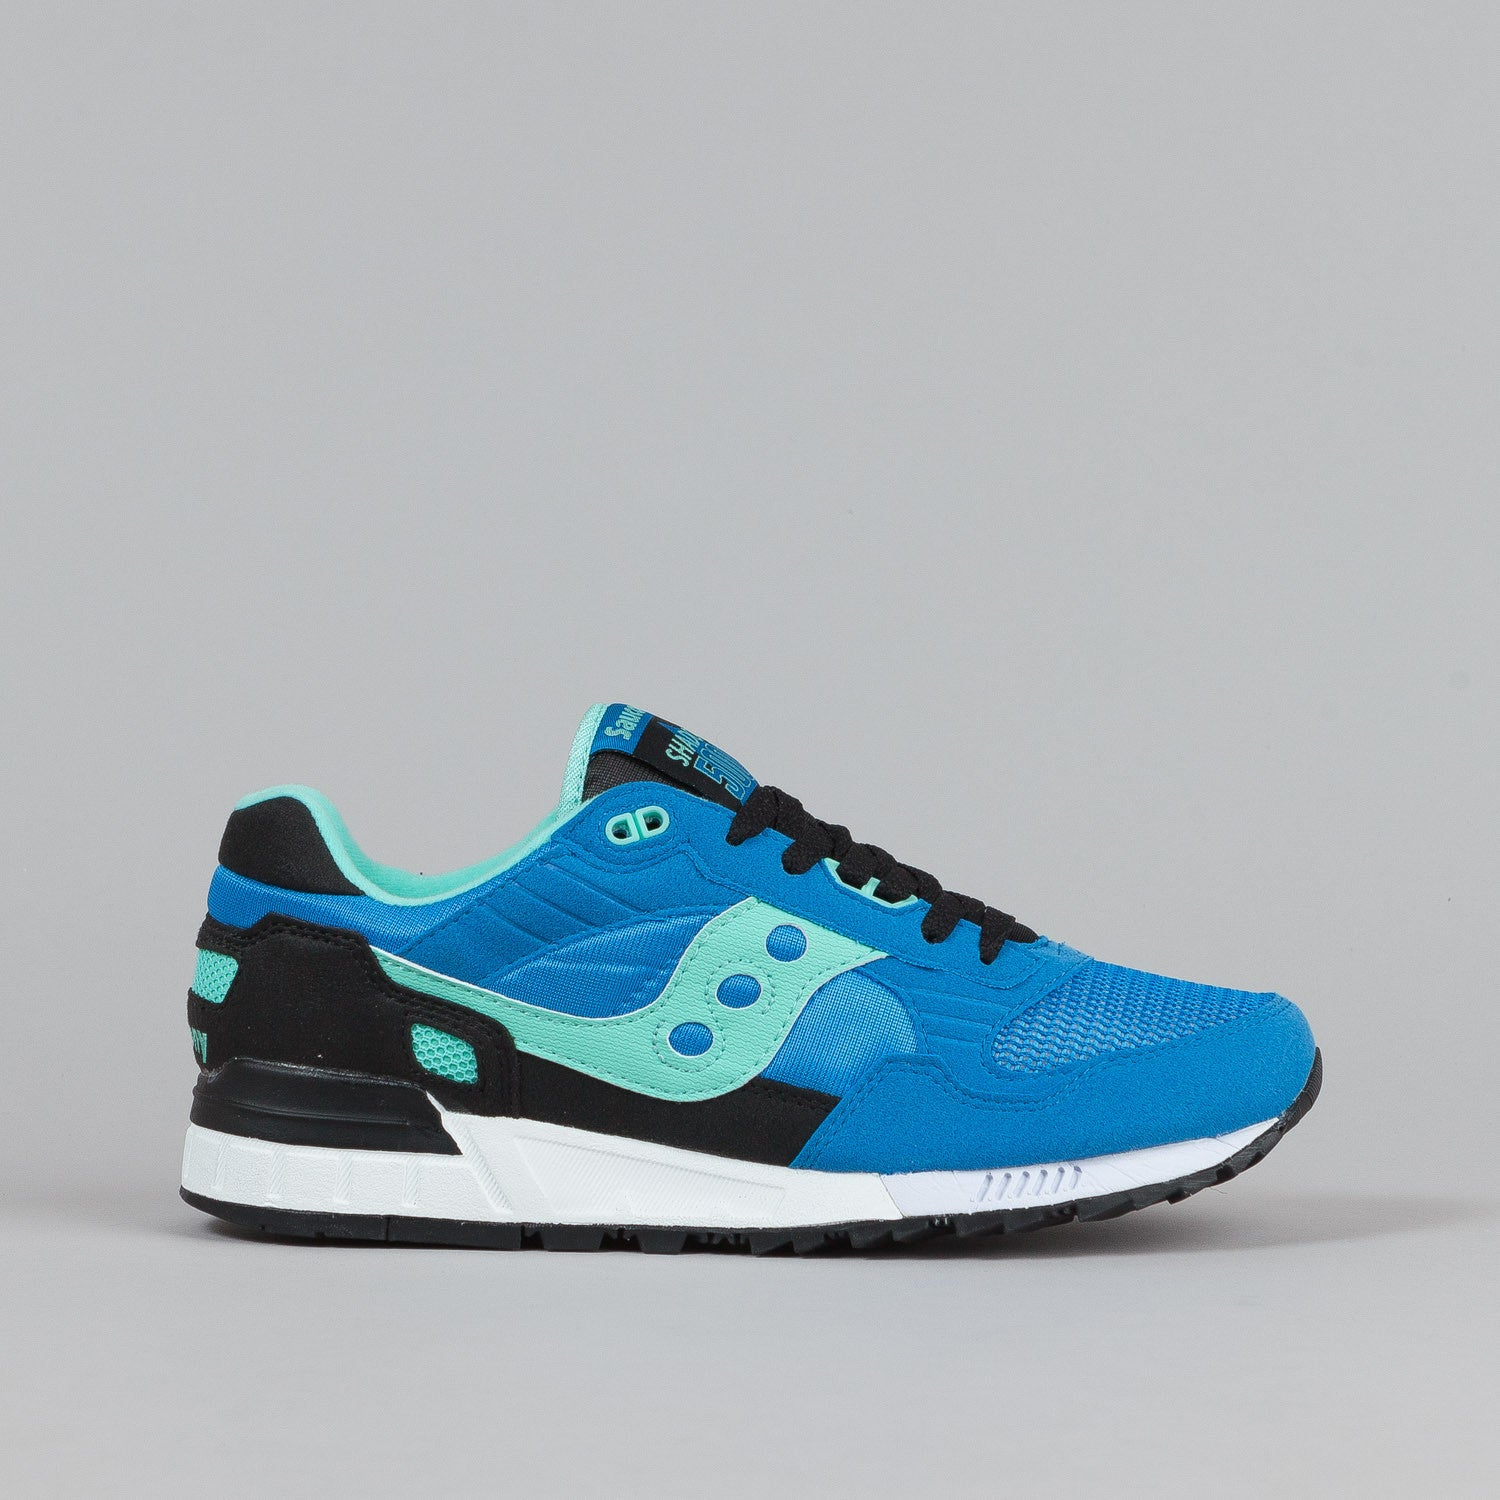 Saucony Shadow 5000 Shoes 'Fresh Picked Blueberry'